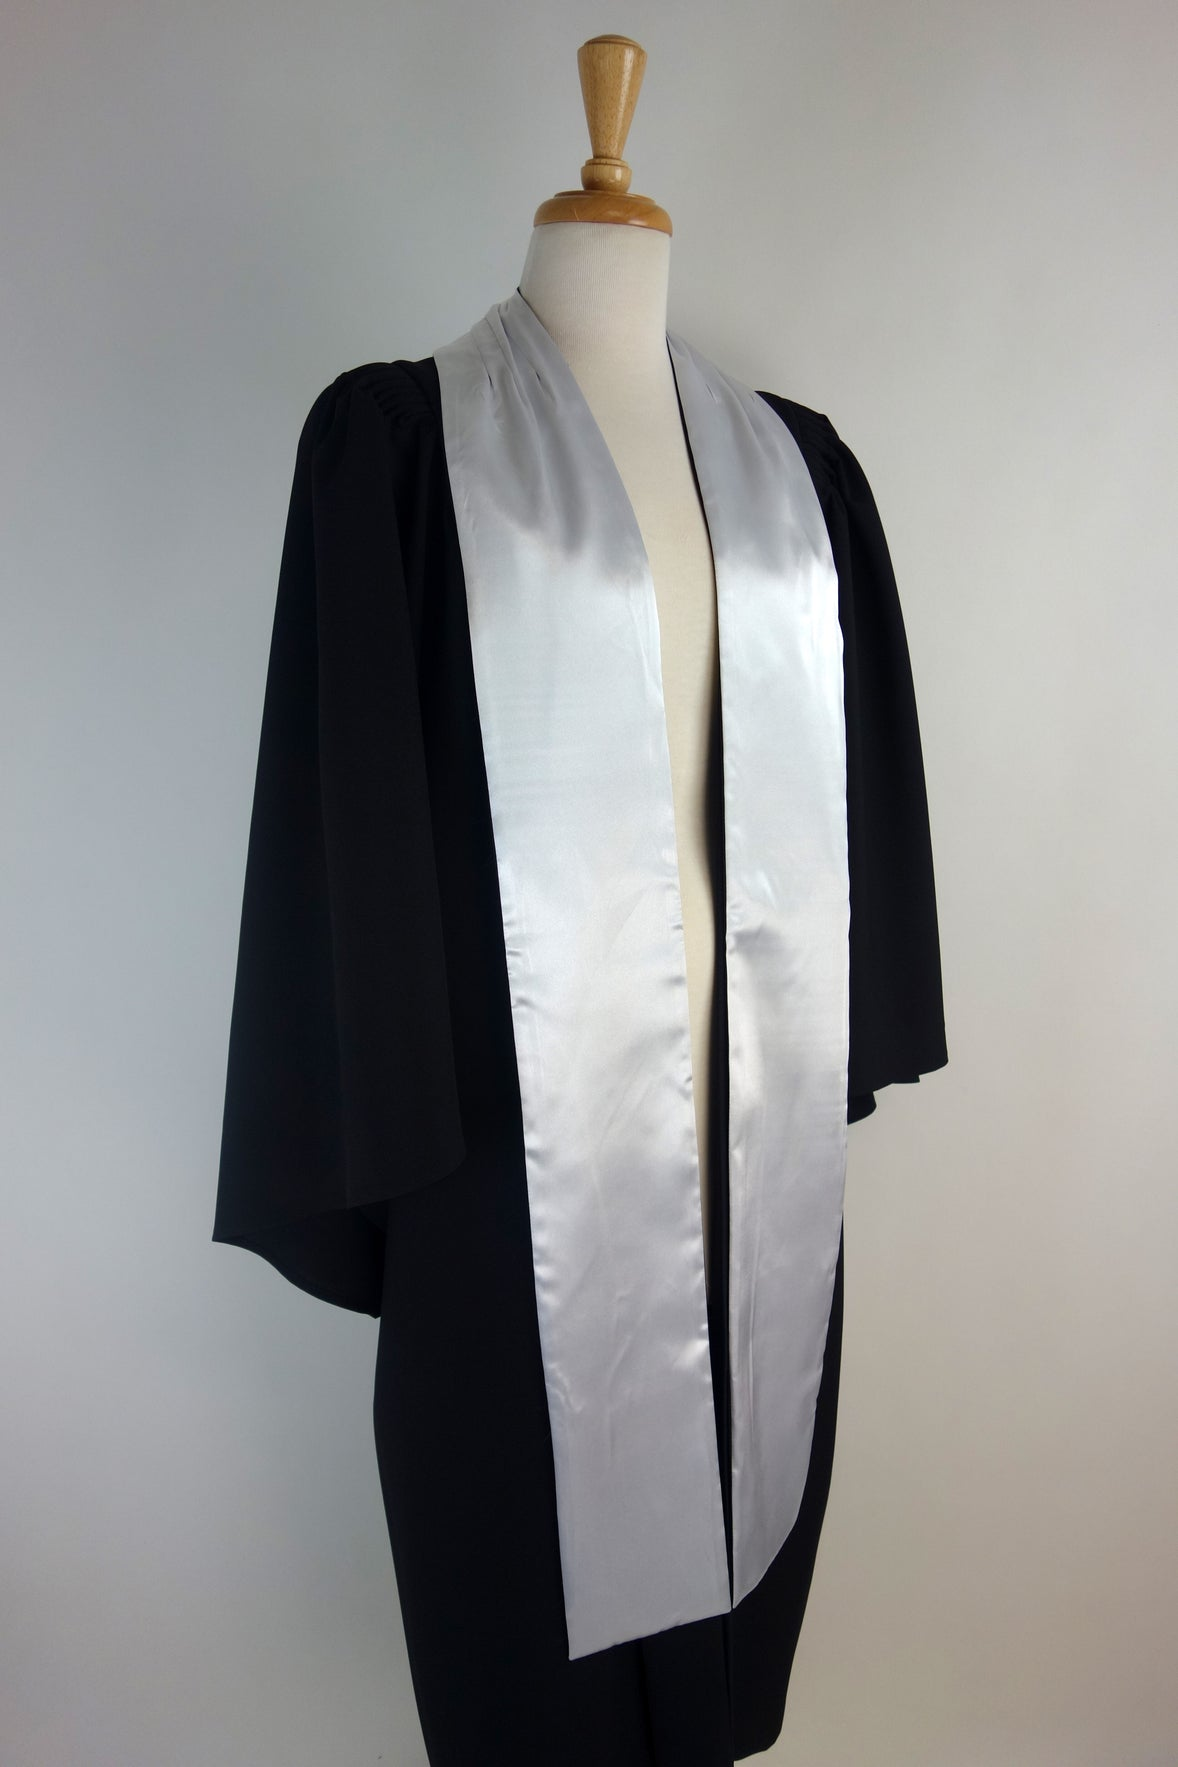 University of Queensland Certificate or Diploma Graduation Gown Set